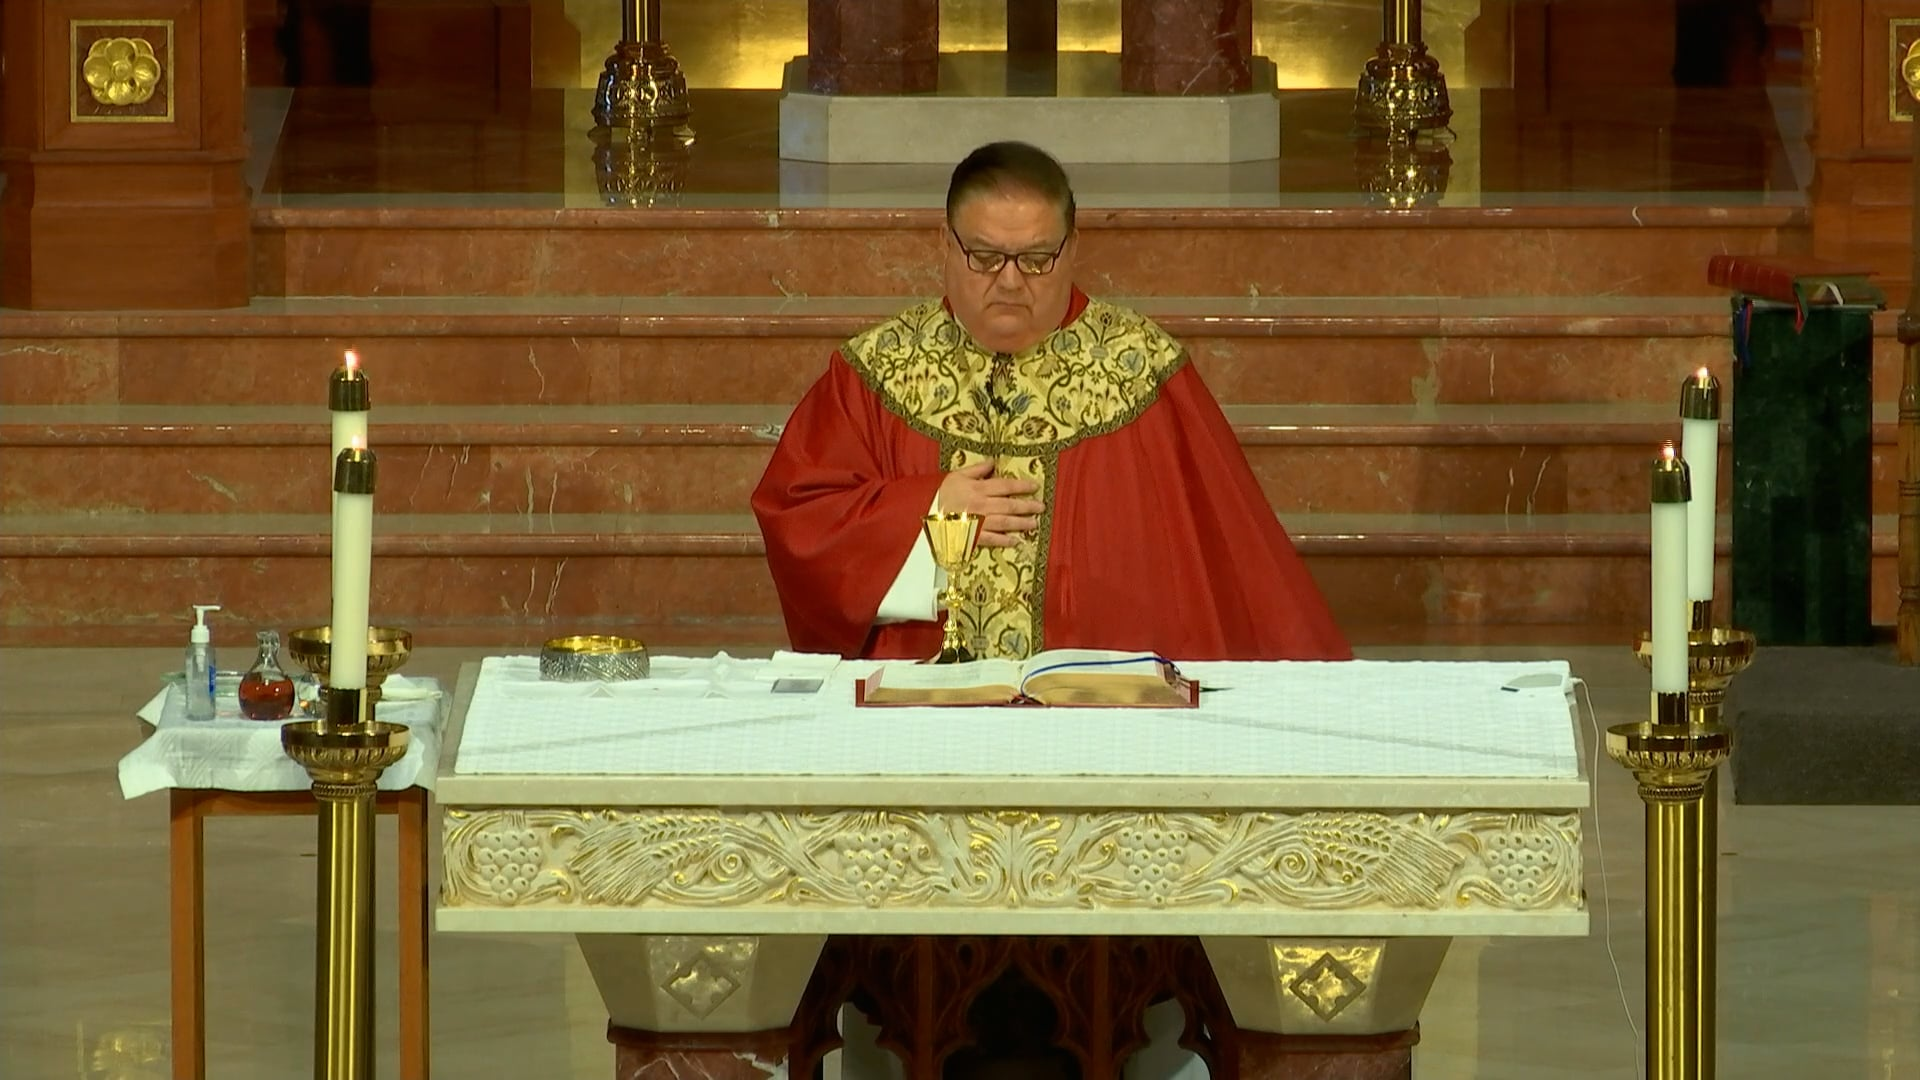 Mass from Agnes Cathedral - October 18, 2021